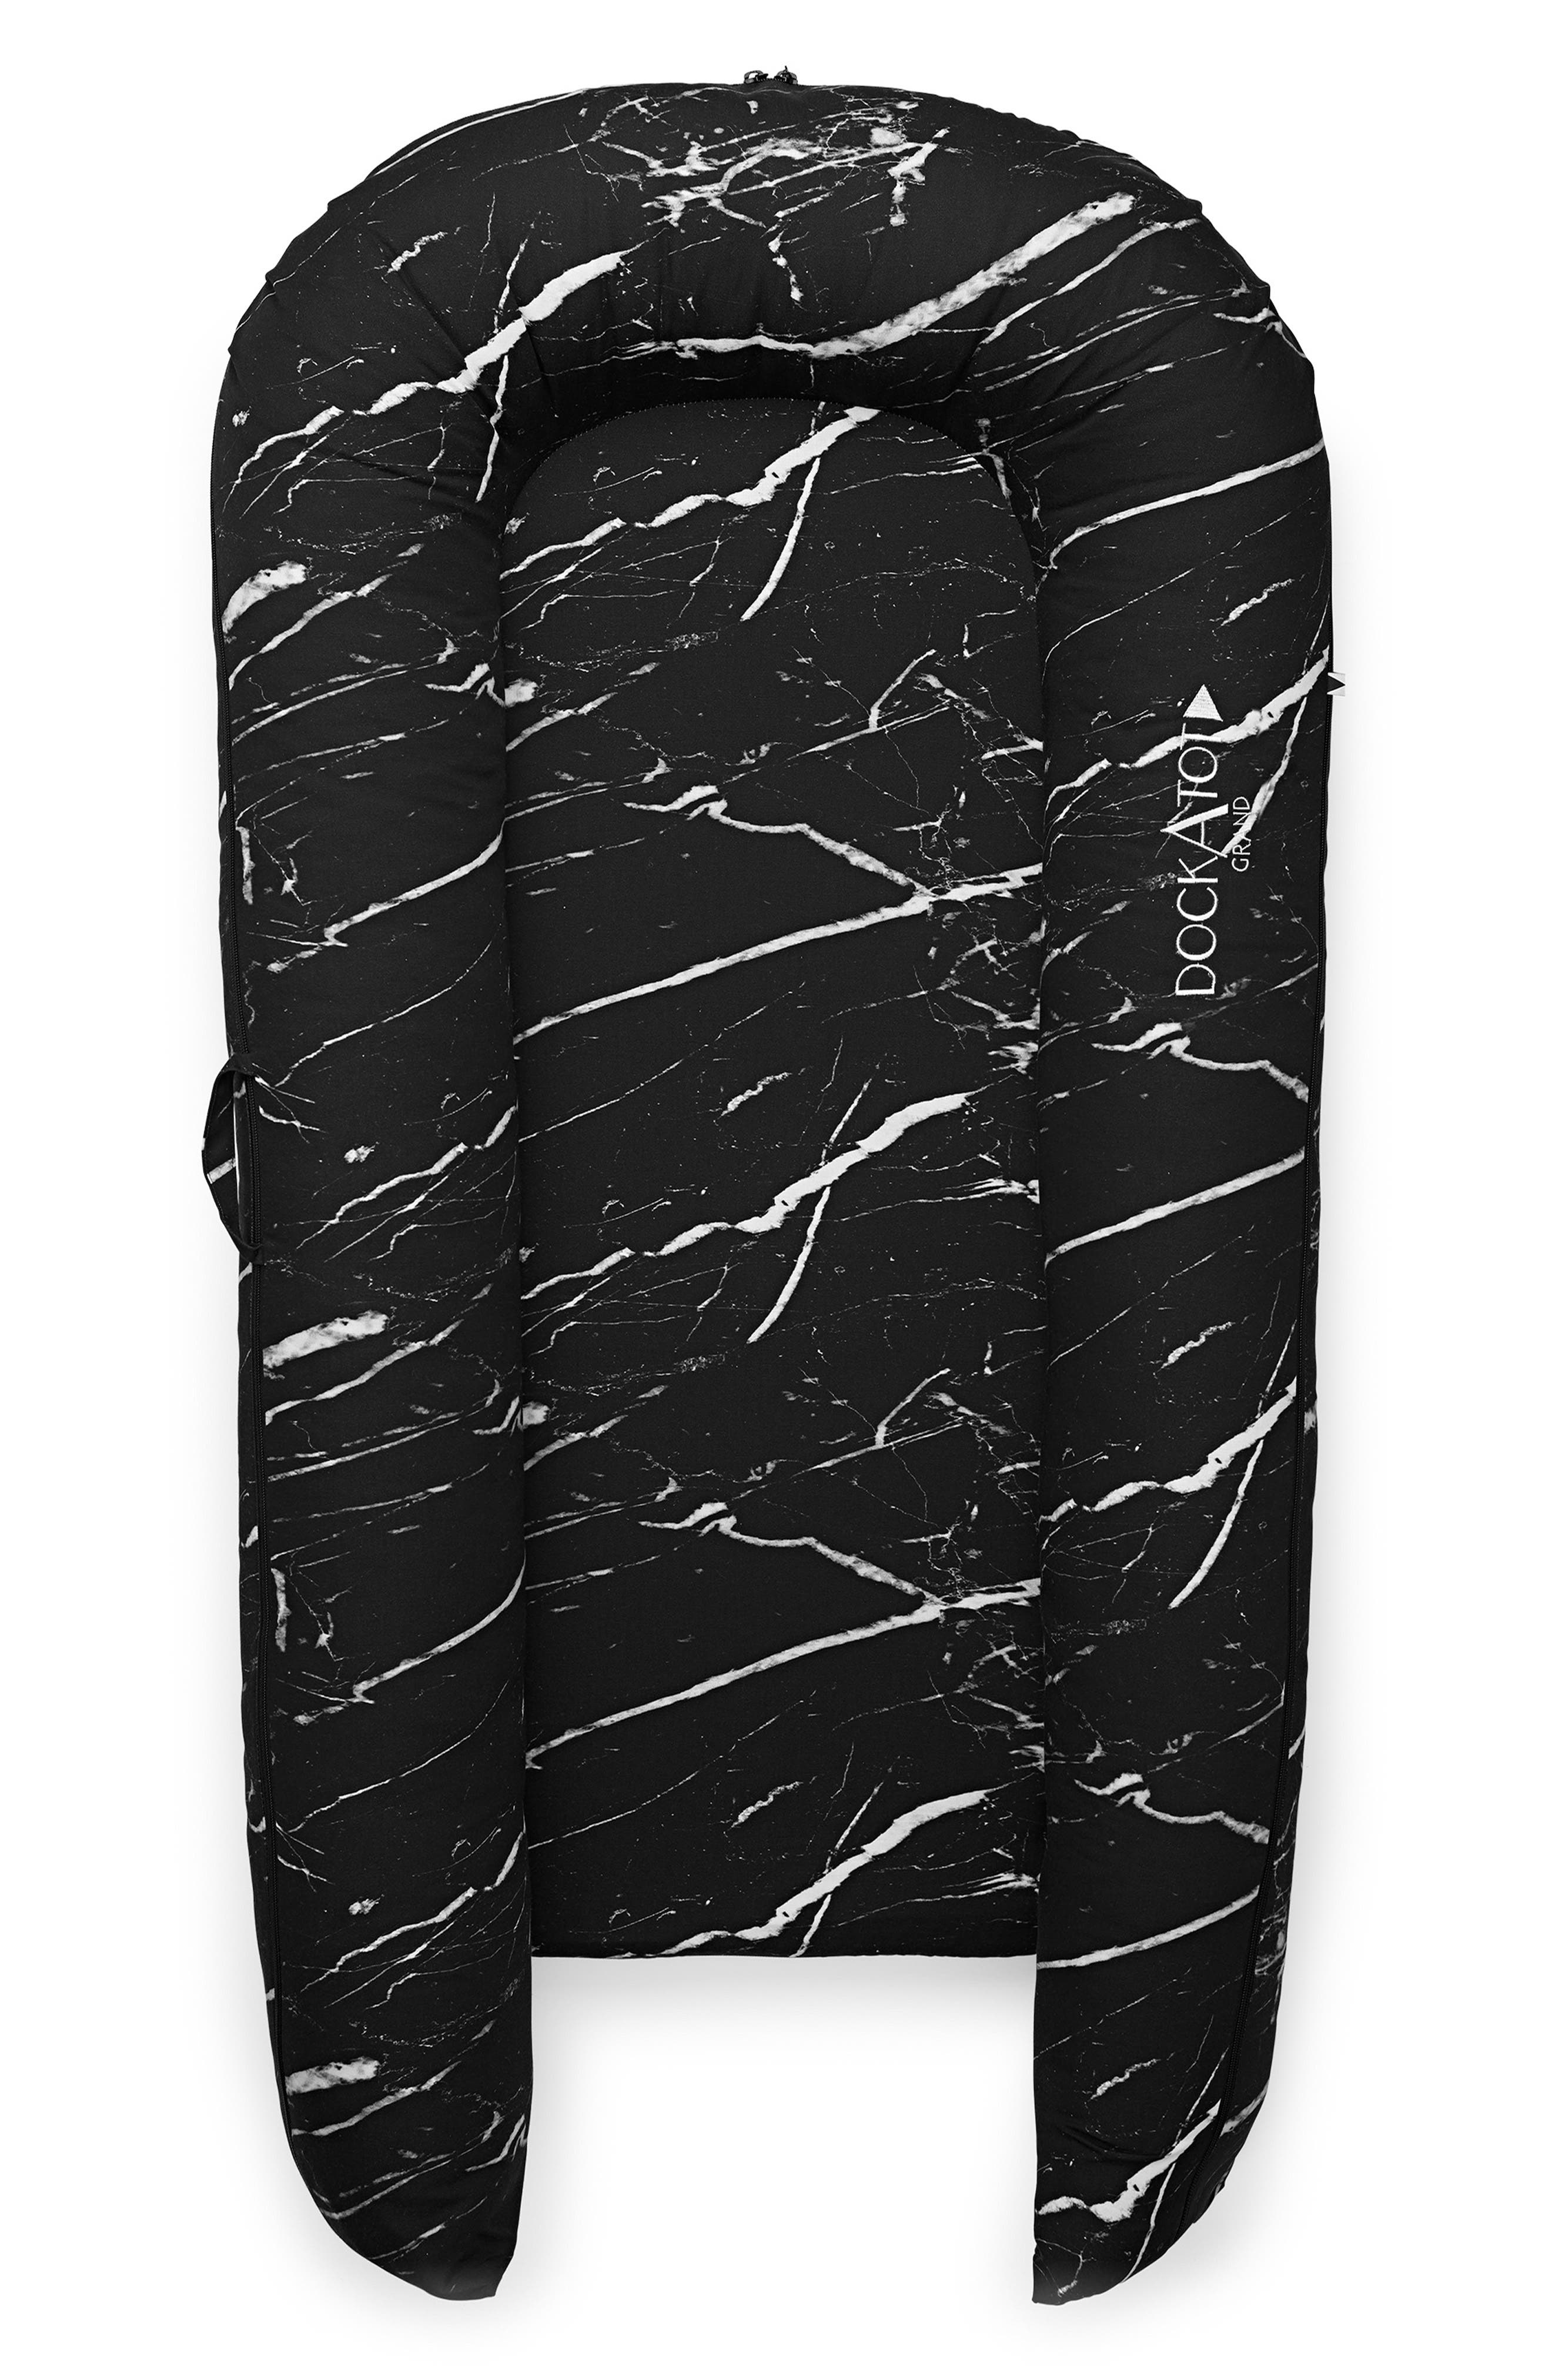 DOCKATOT Grand Stage 2 Dock Cover, Main, color, BLACK MARBLE